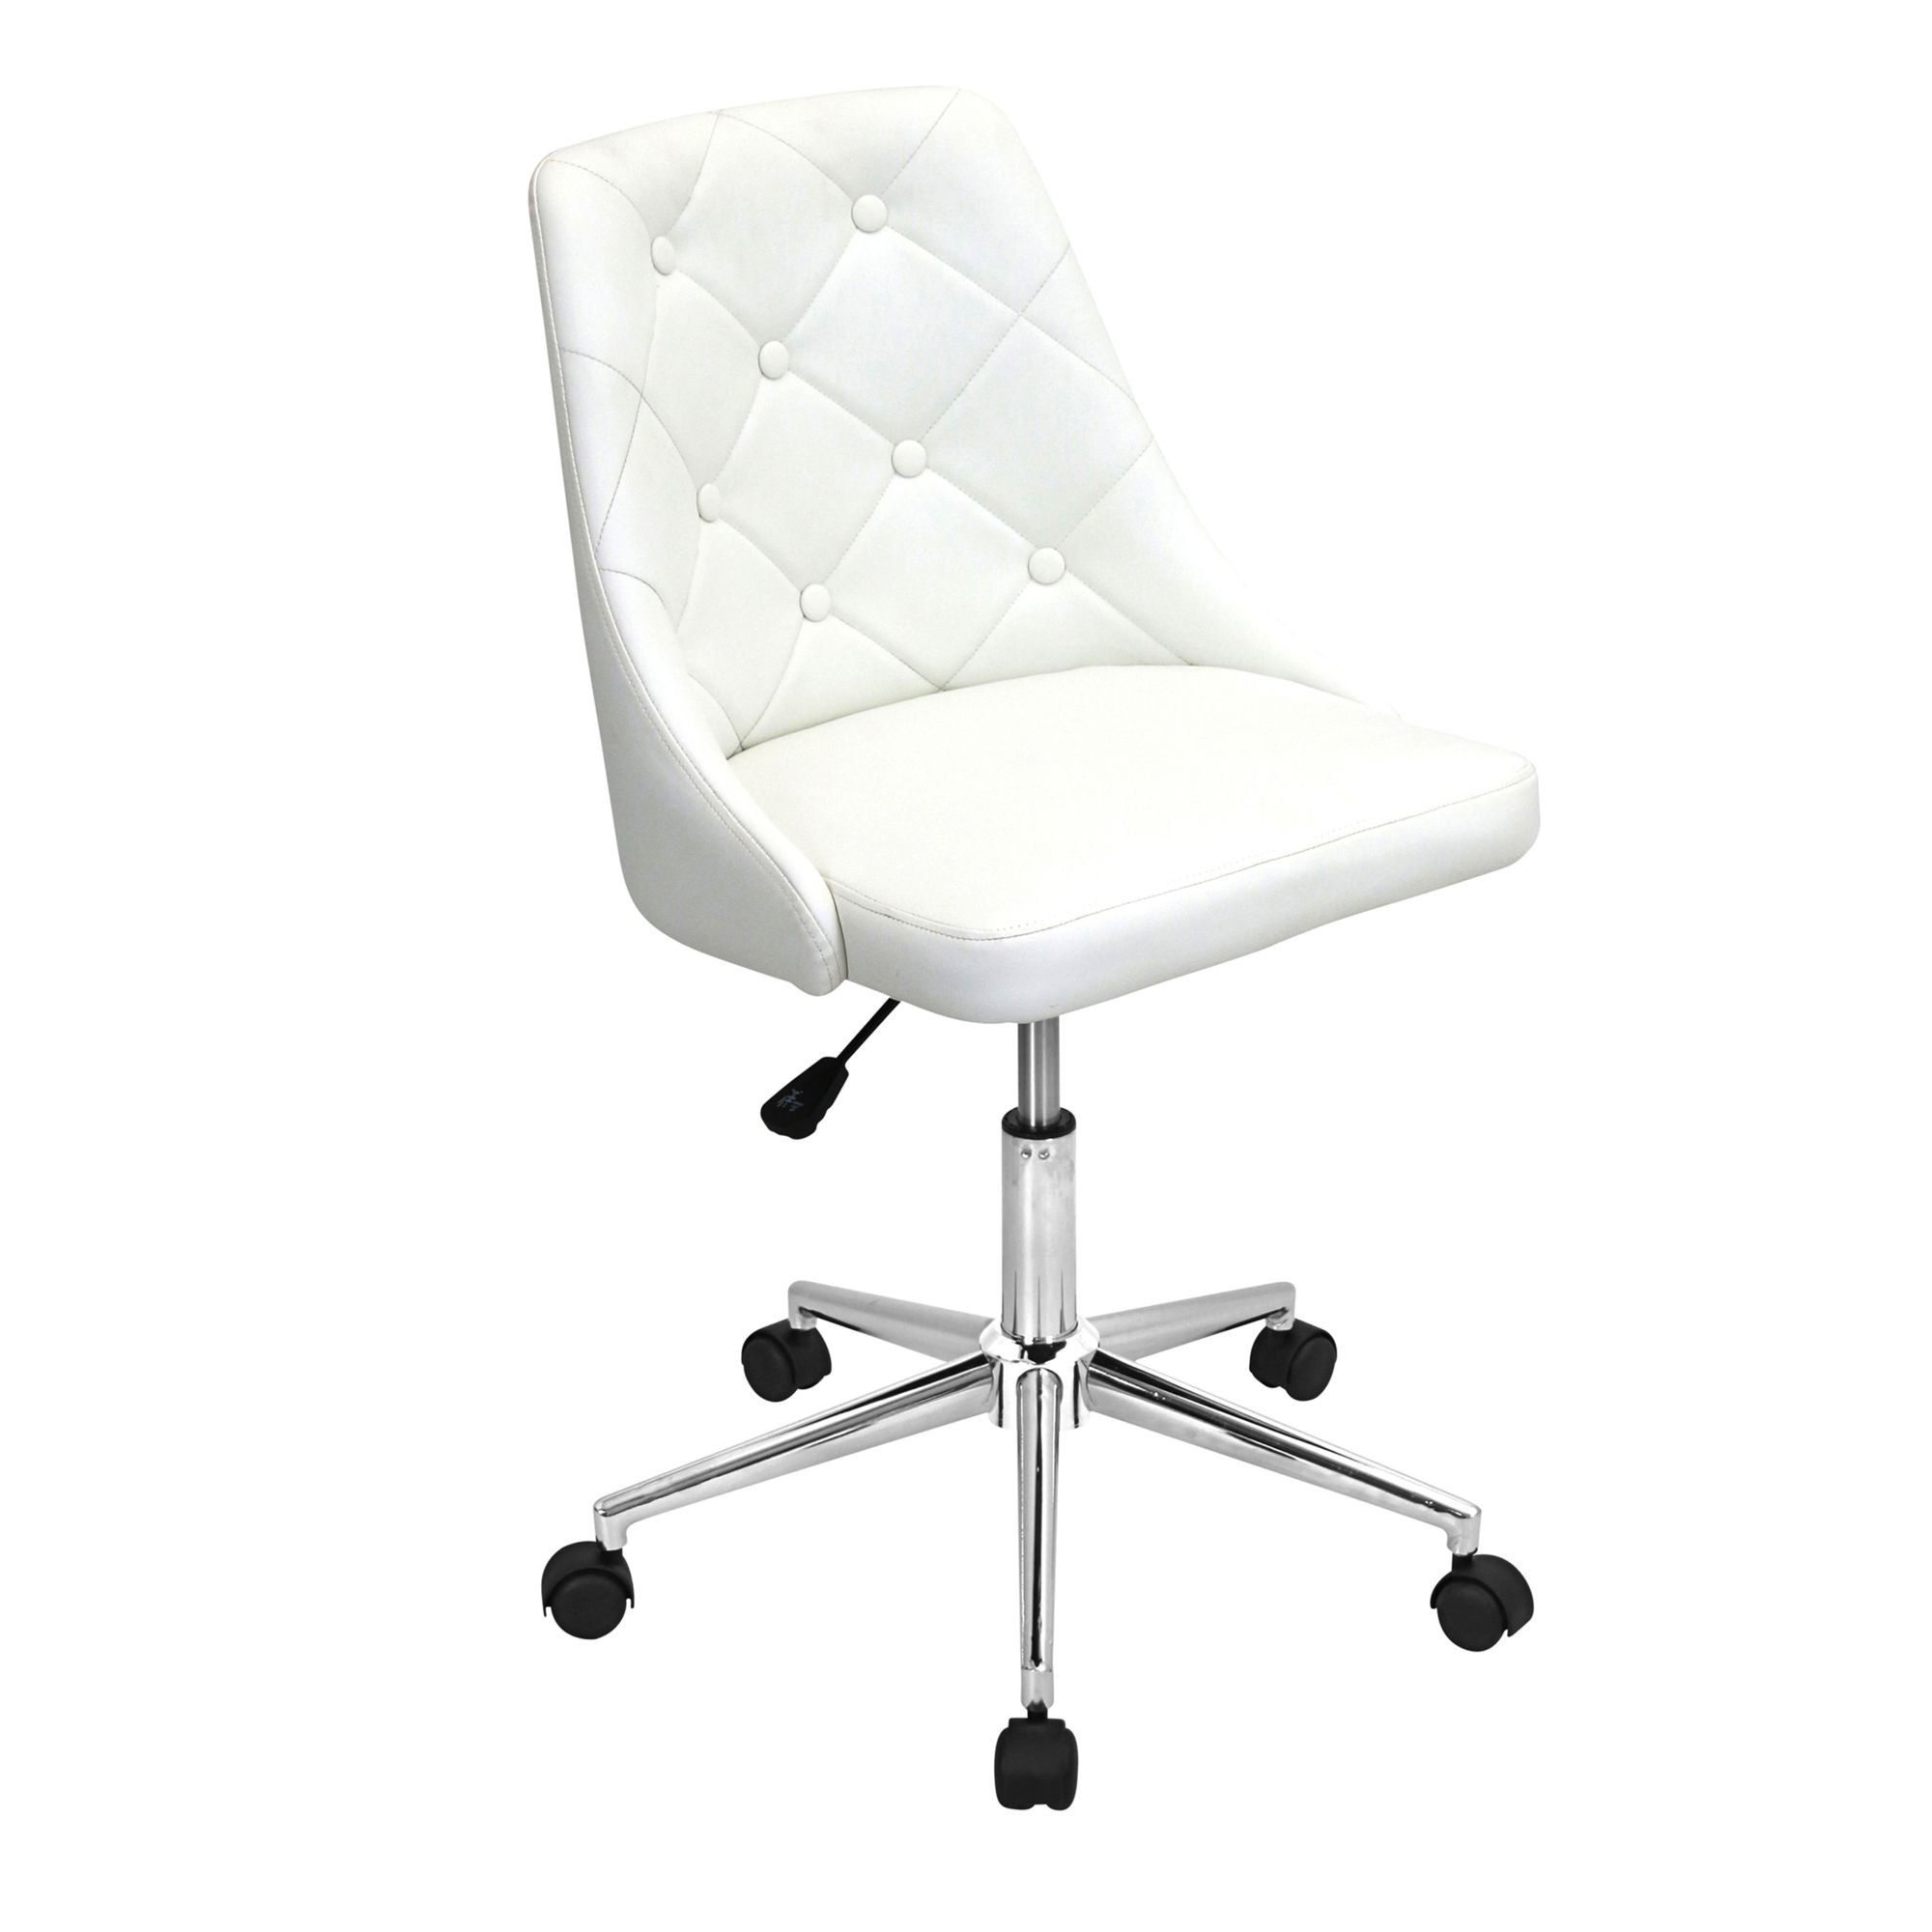 Off white office chair Furniture Save 44 Madison Seating Marche Office Chair In Eggshell Off White By Lumisource